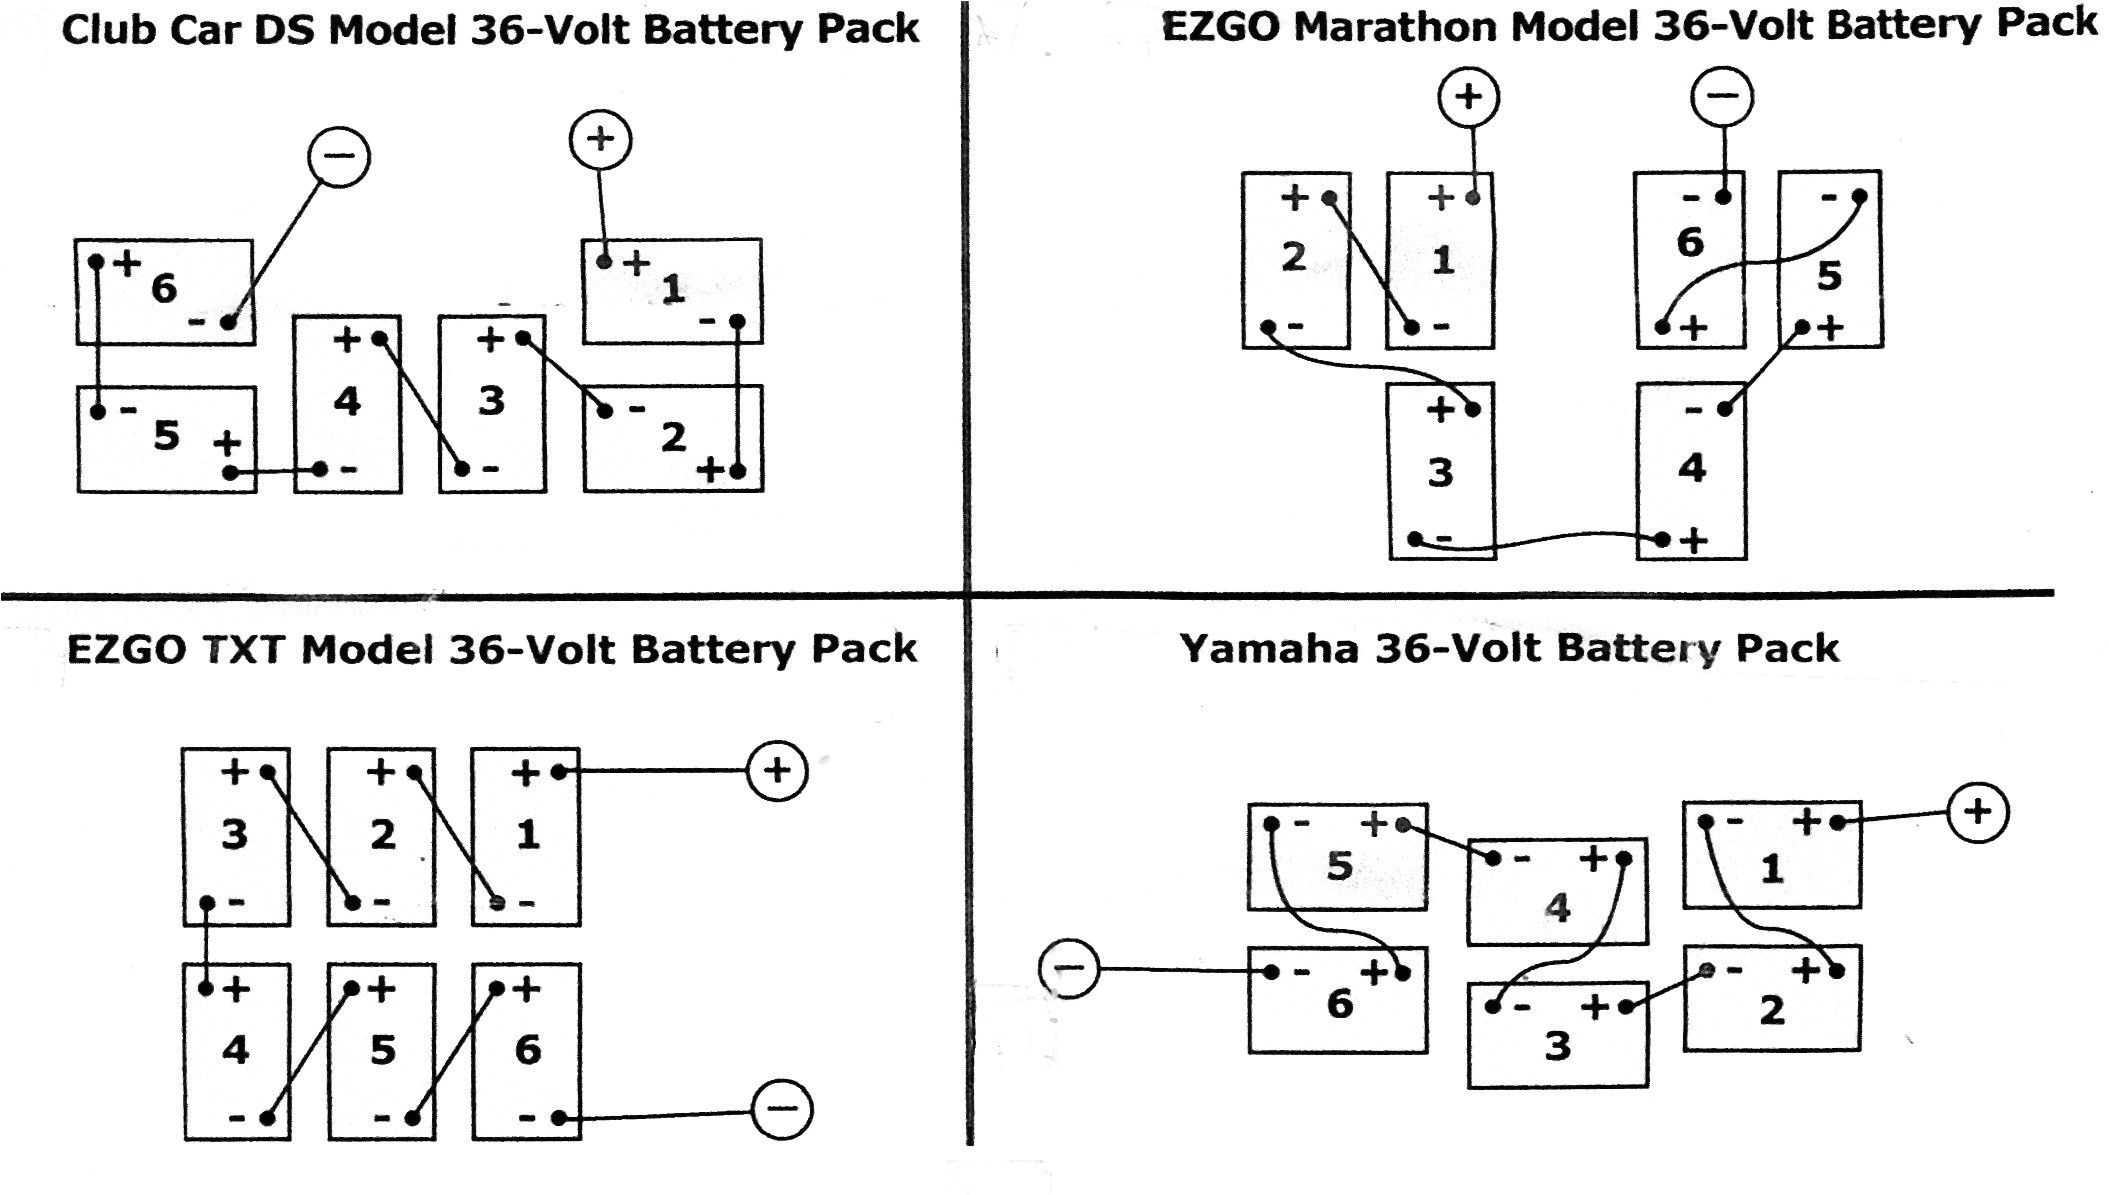 ezgo golf cart batteries wiring diagram battery circuit new pargo for diagrams schematics 9l at jpg